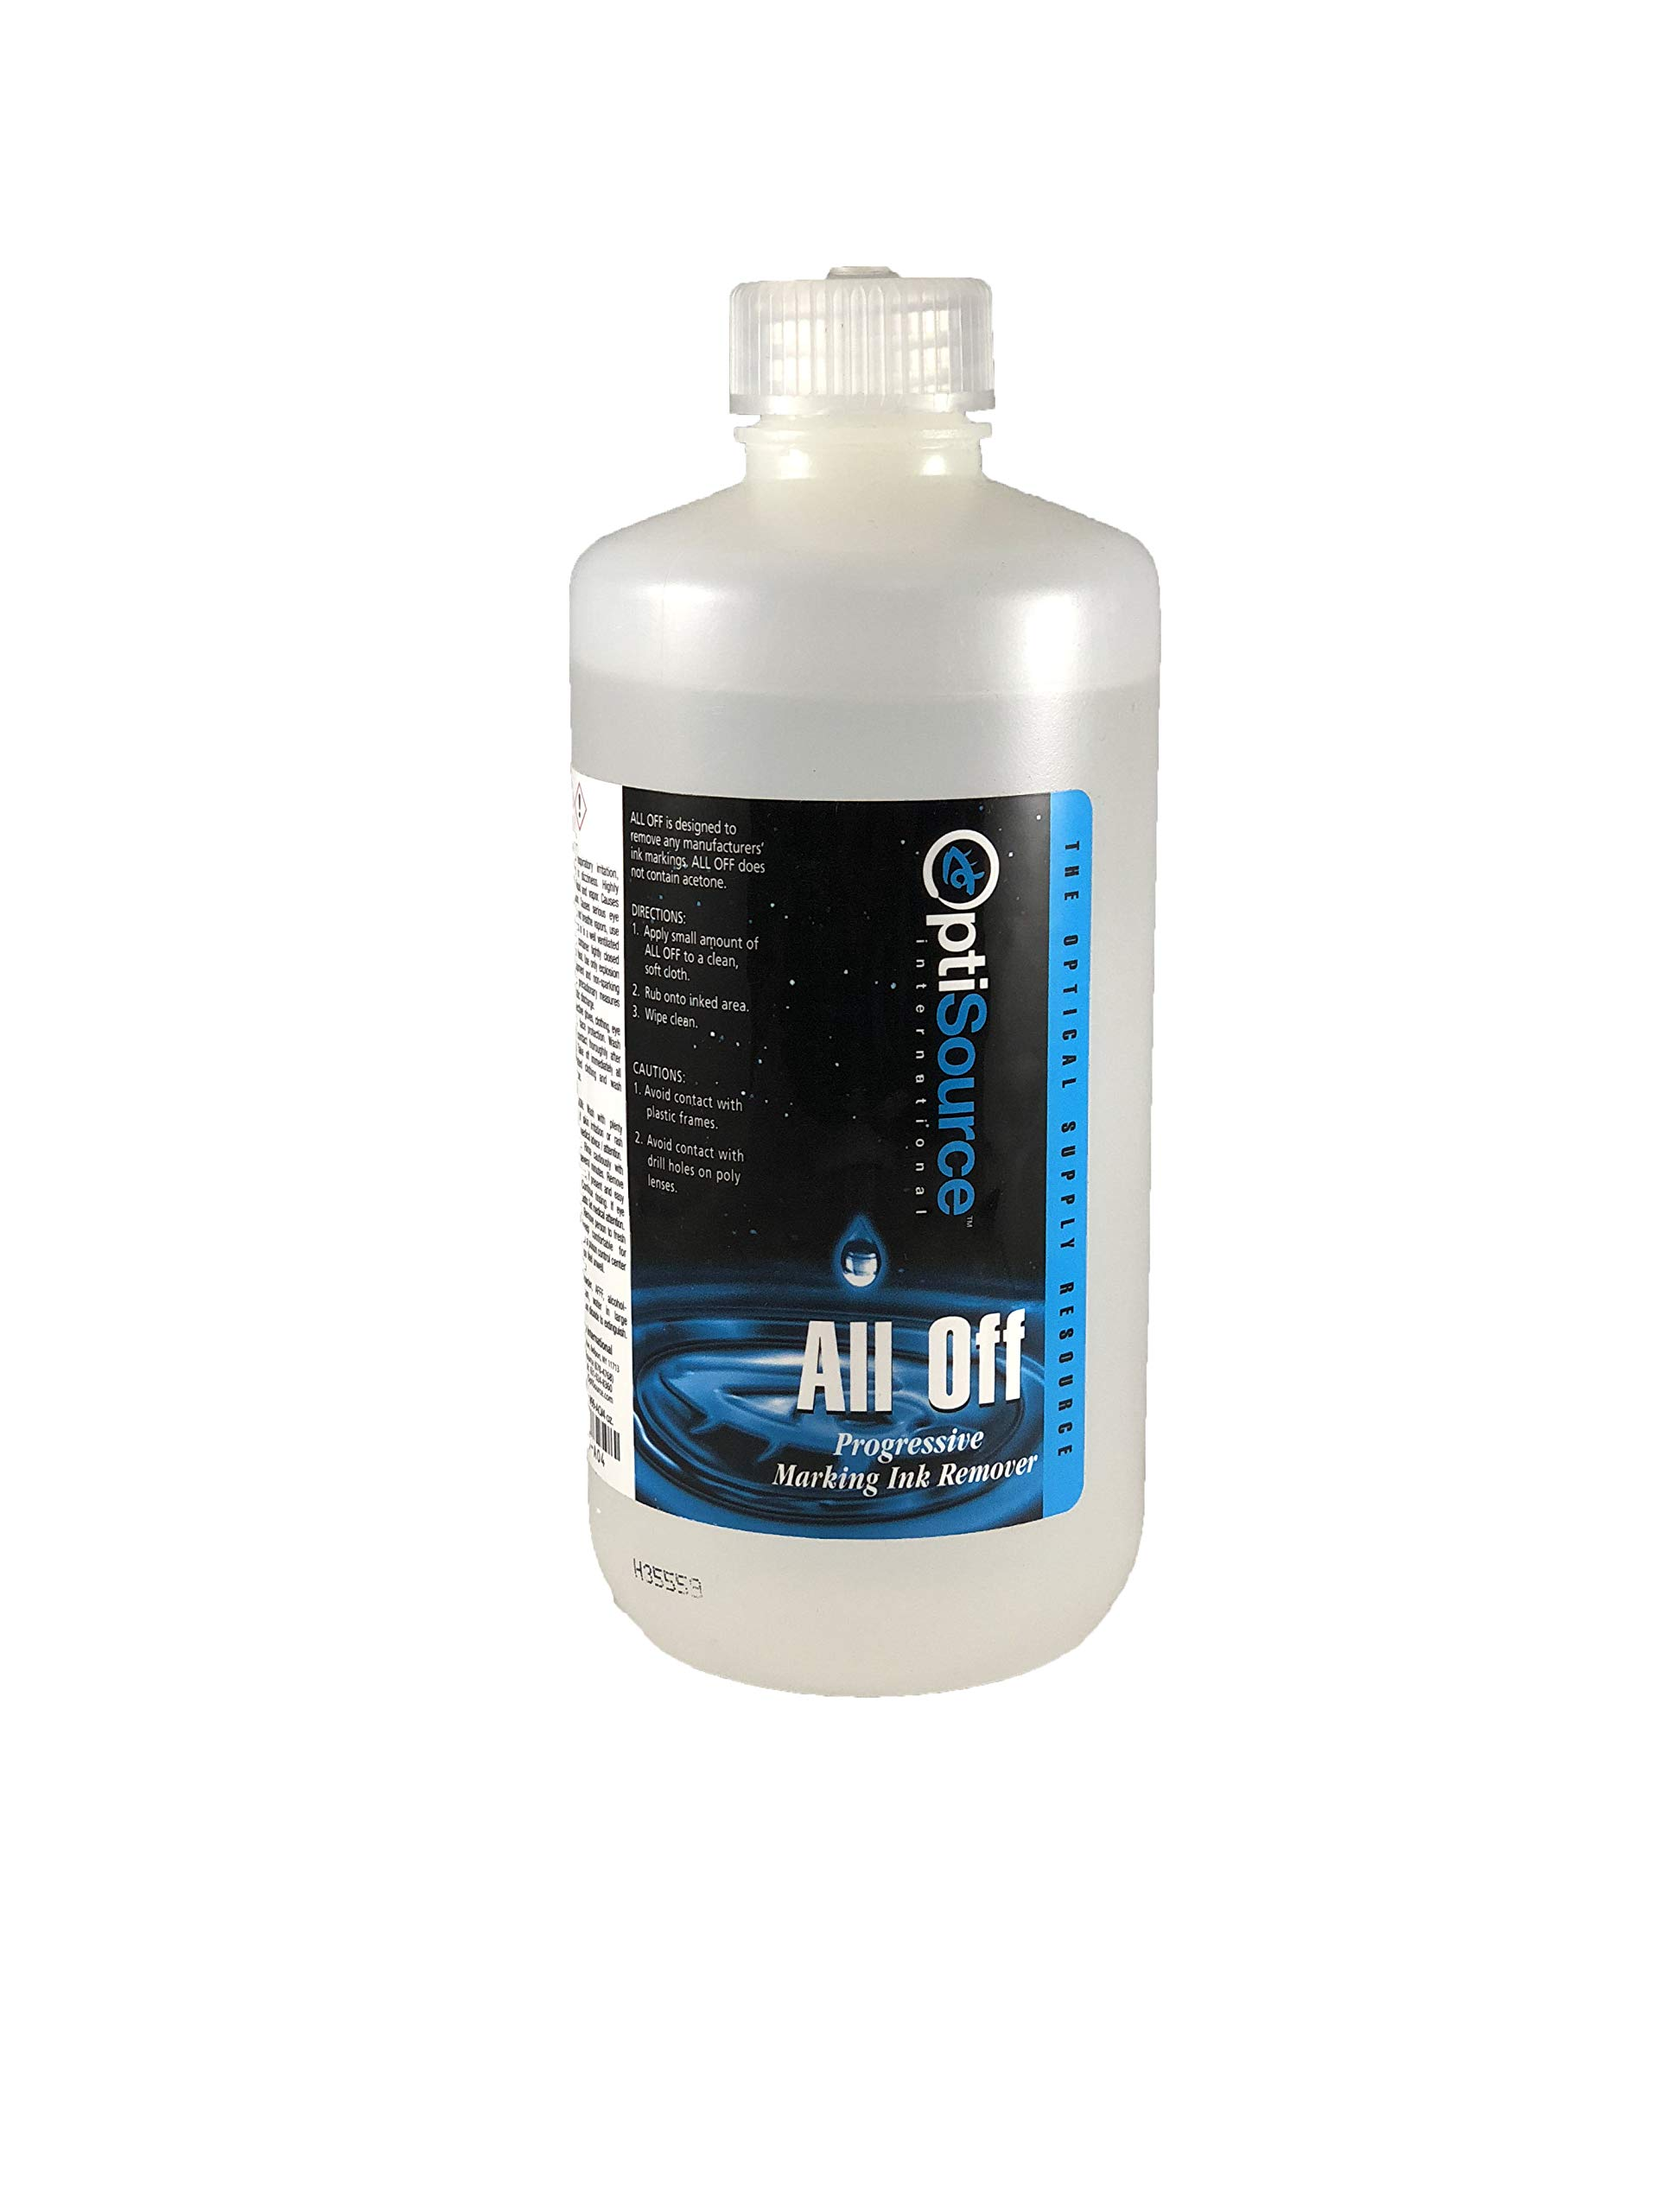 All Off Marking Ink Remover 16 oz. - Instantly Dissolves and Removes Ink Markings Faster and Safer Than Acetone, in 3 Seconds Flat